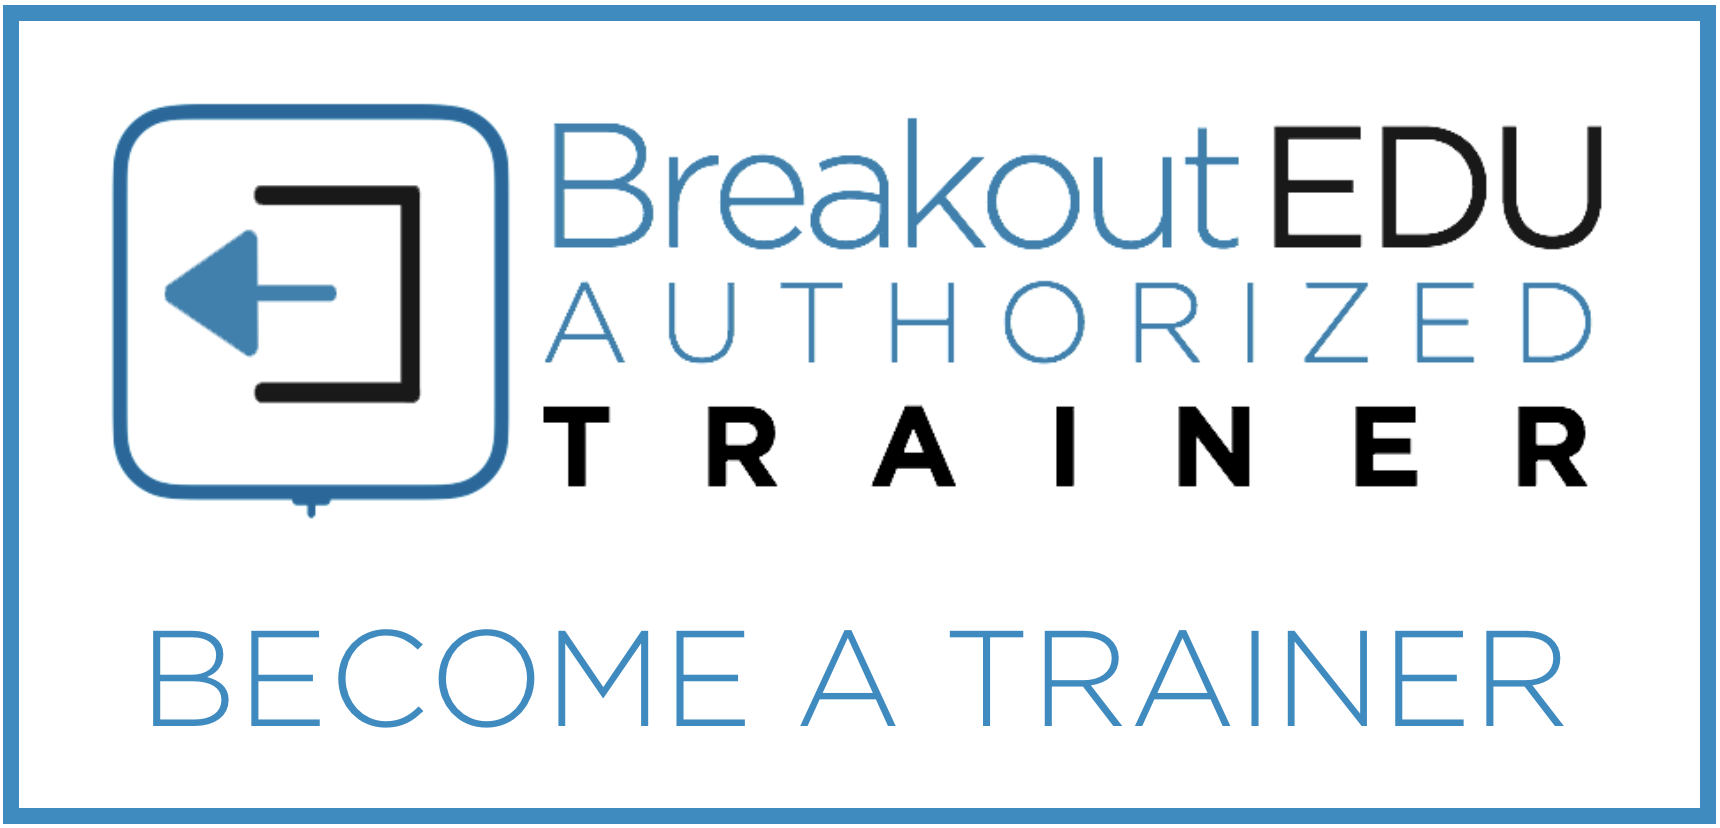 Love to present on Breakout EDU? Great! Consider applying to become a Breakout EDU Authorized Trainer for some great professional learning opportunities.